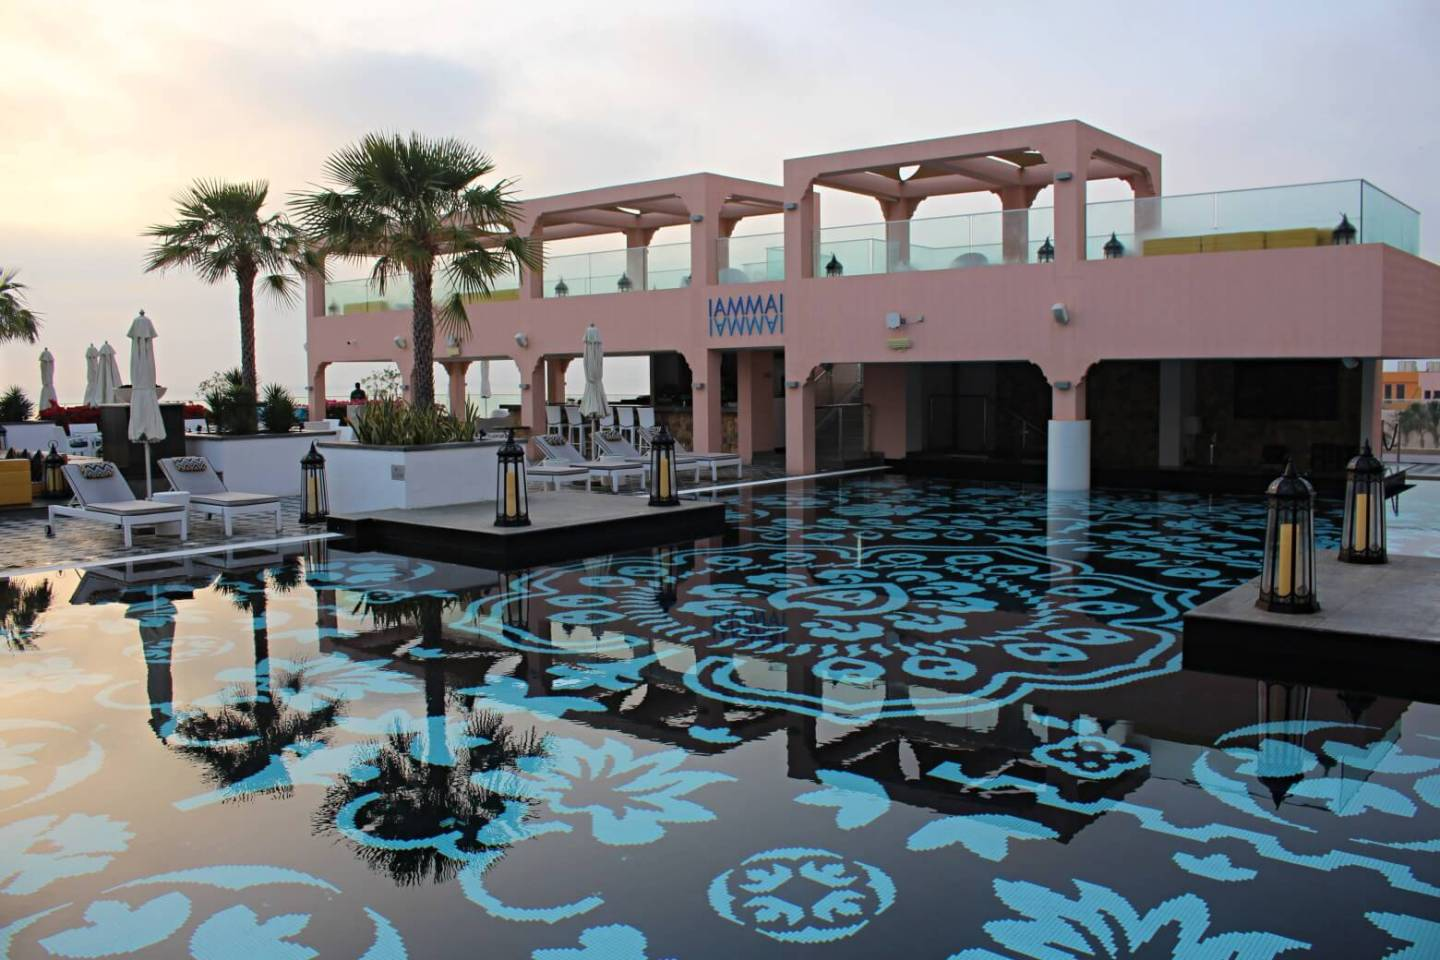 Iammai pool at Fairmont Fujairah. Image Credit: David Tapley